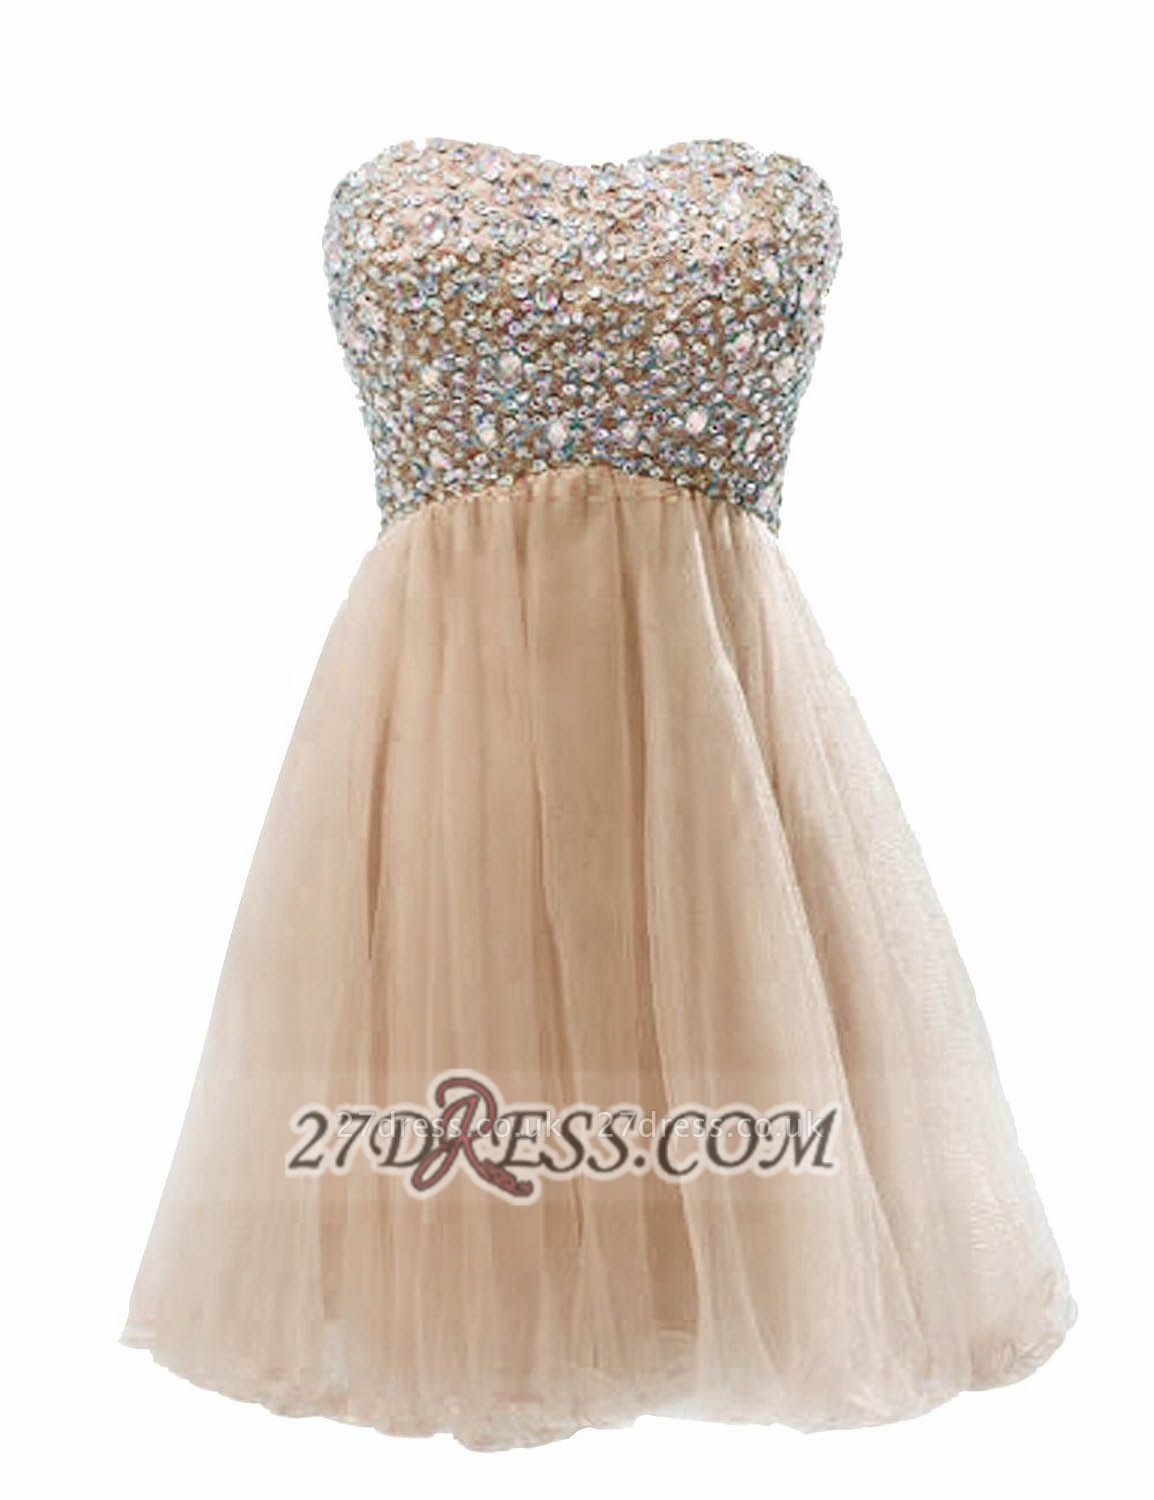 Lovely Semi-sweetheart Sleeveless Short Homecoming Dress UK Beadings Crystals Lace-up Tulle Cocktail Gown